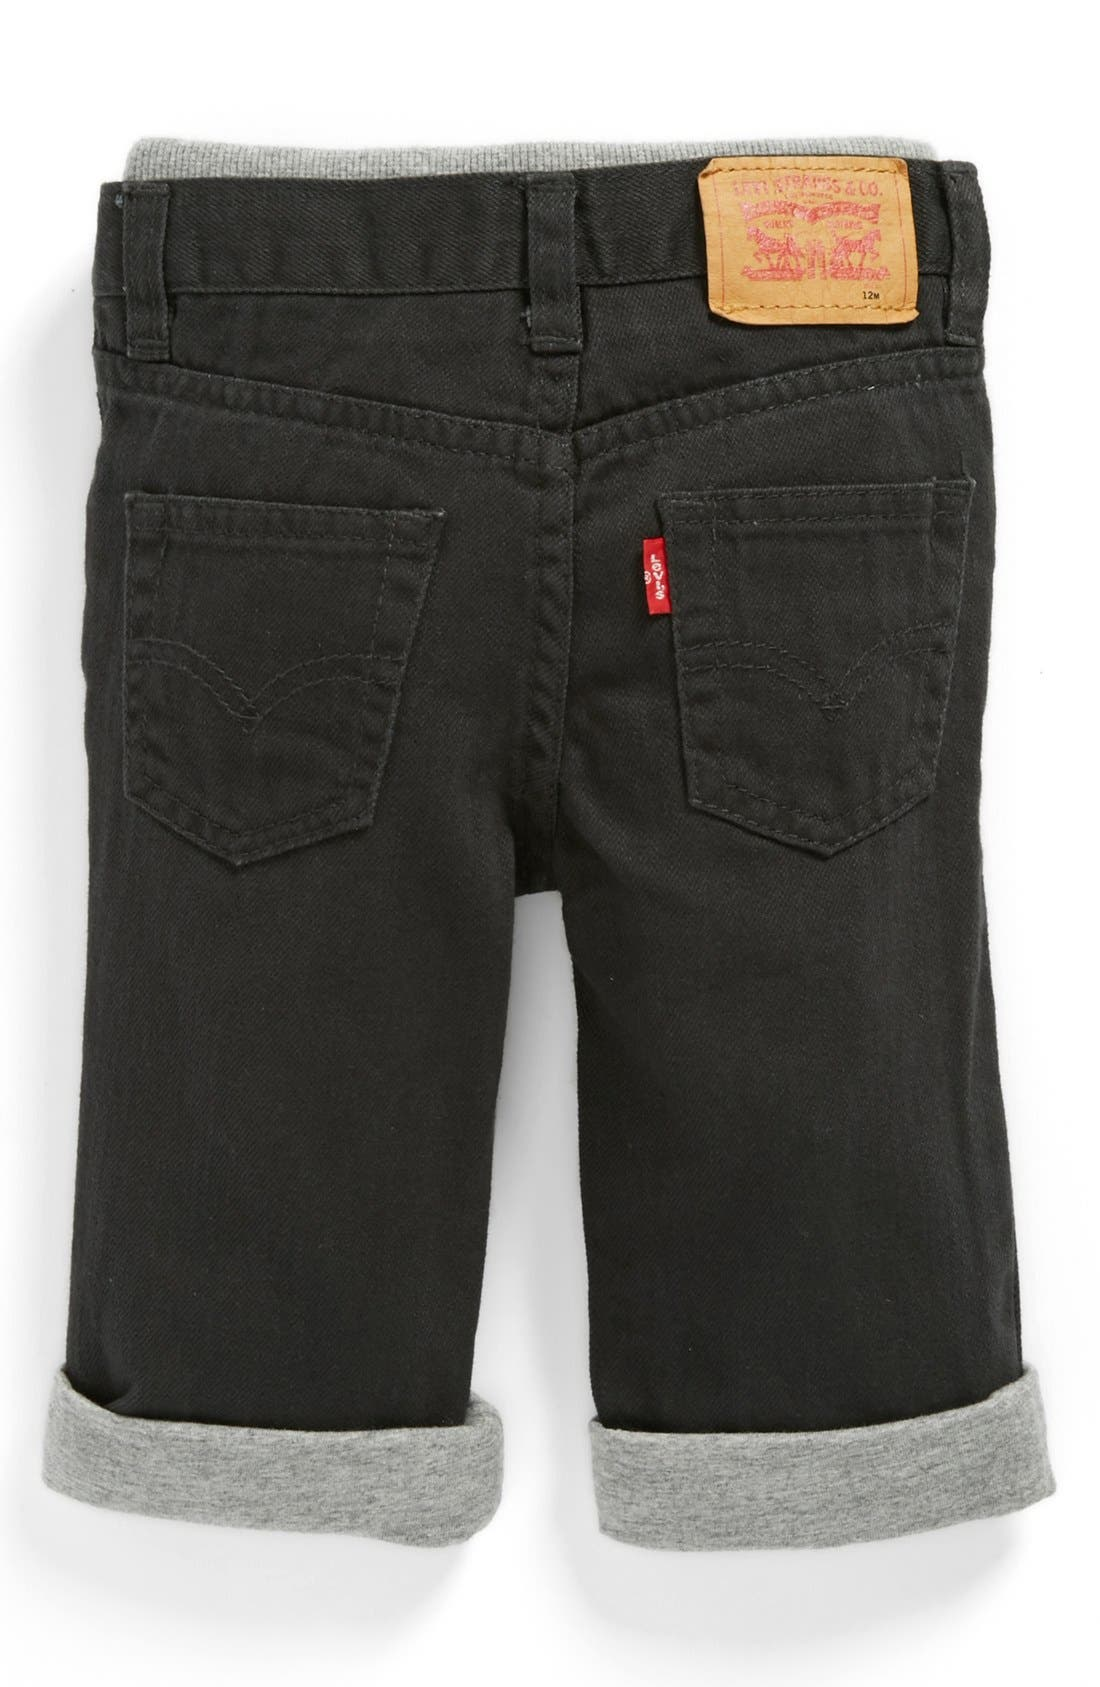 Main Image - Levi's® '514™' Straight Leg Jeans (Baby)